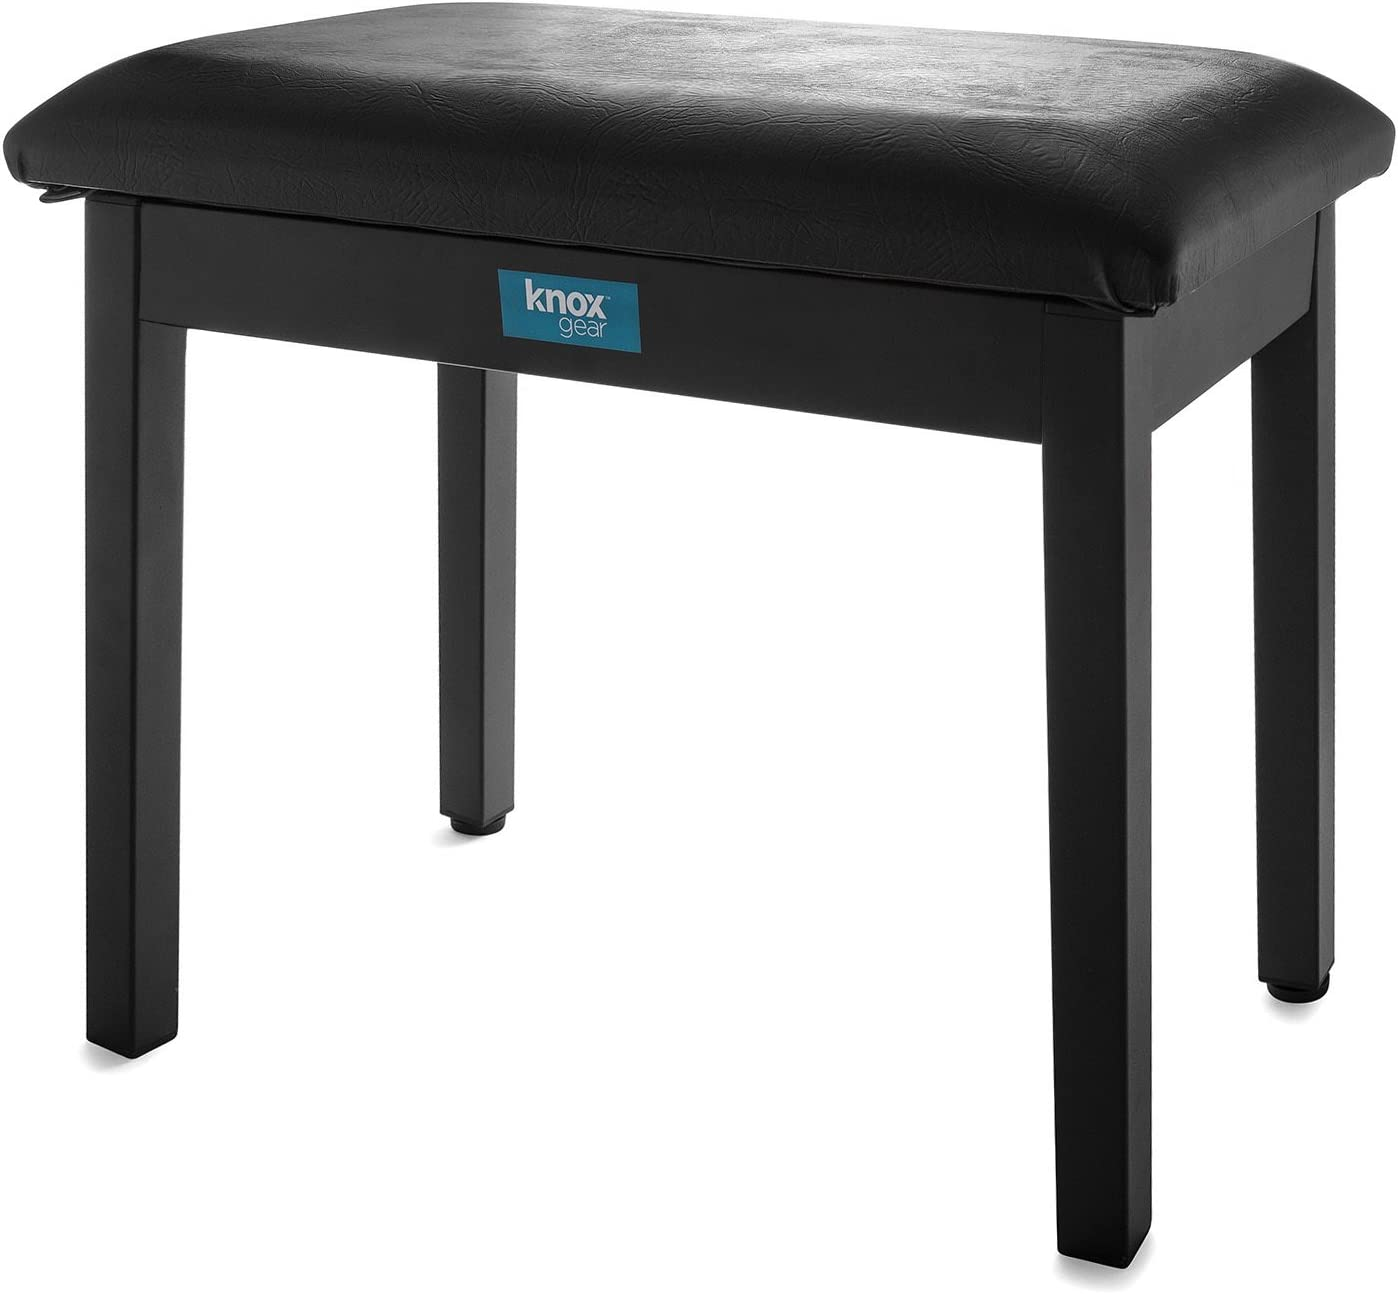 Knox Gear Furniture Style Flip-Top Piano Bench (Black)